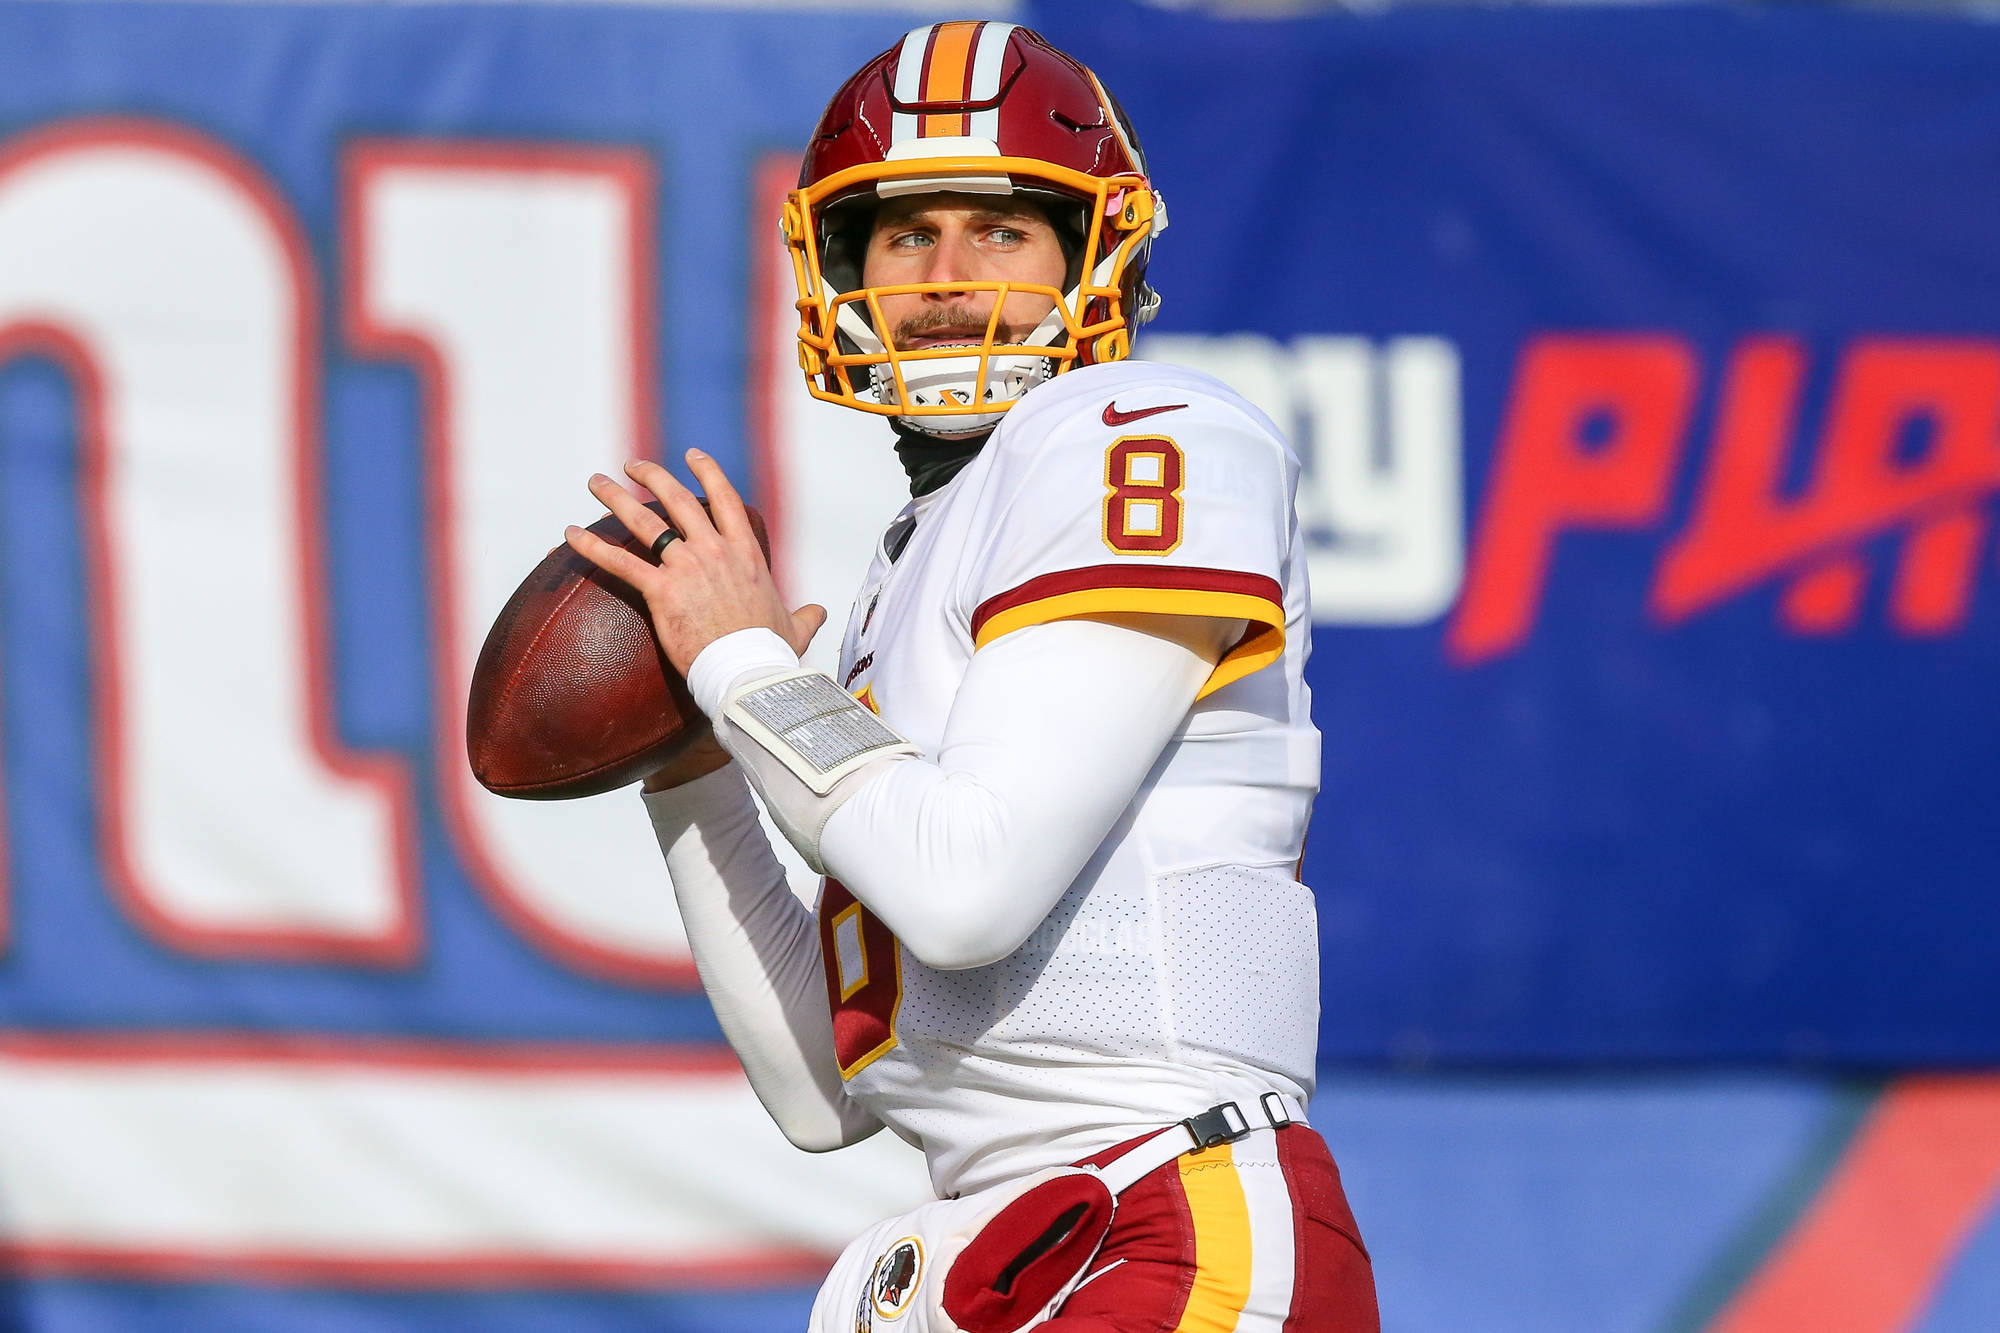 Redskins will place transition tag on Kirk Cousins, look to trade him